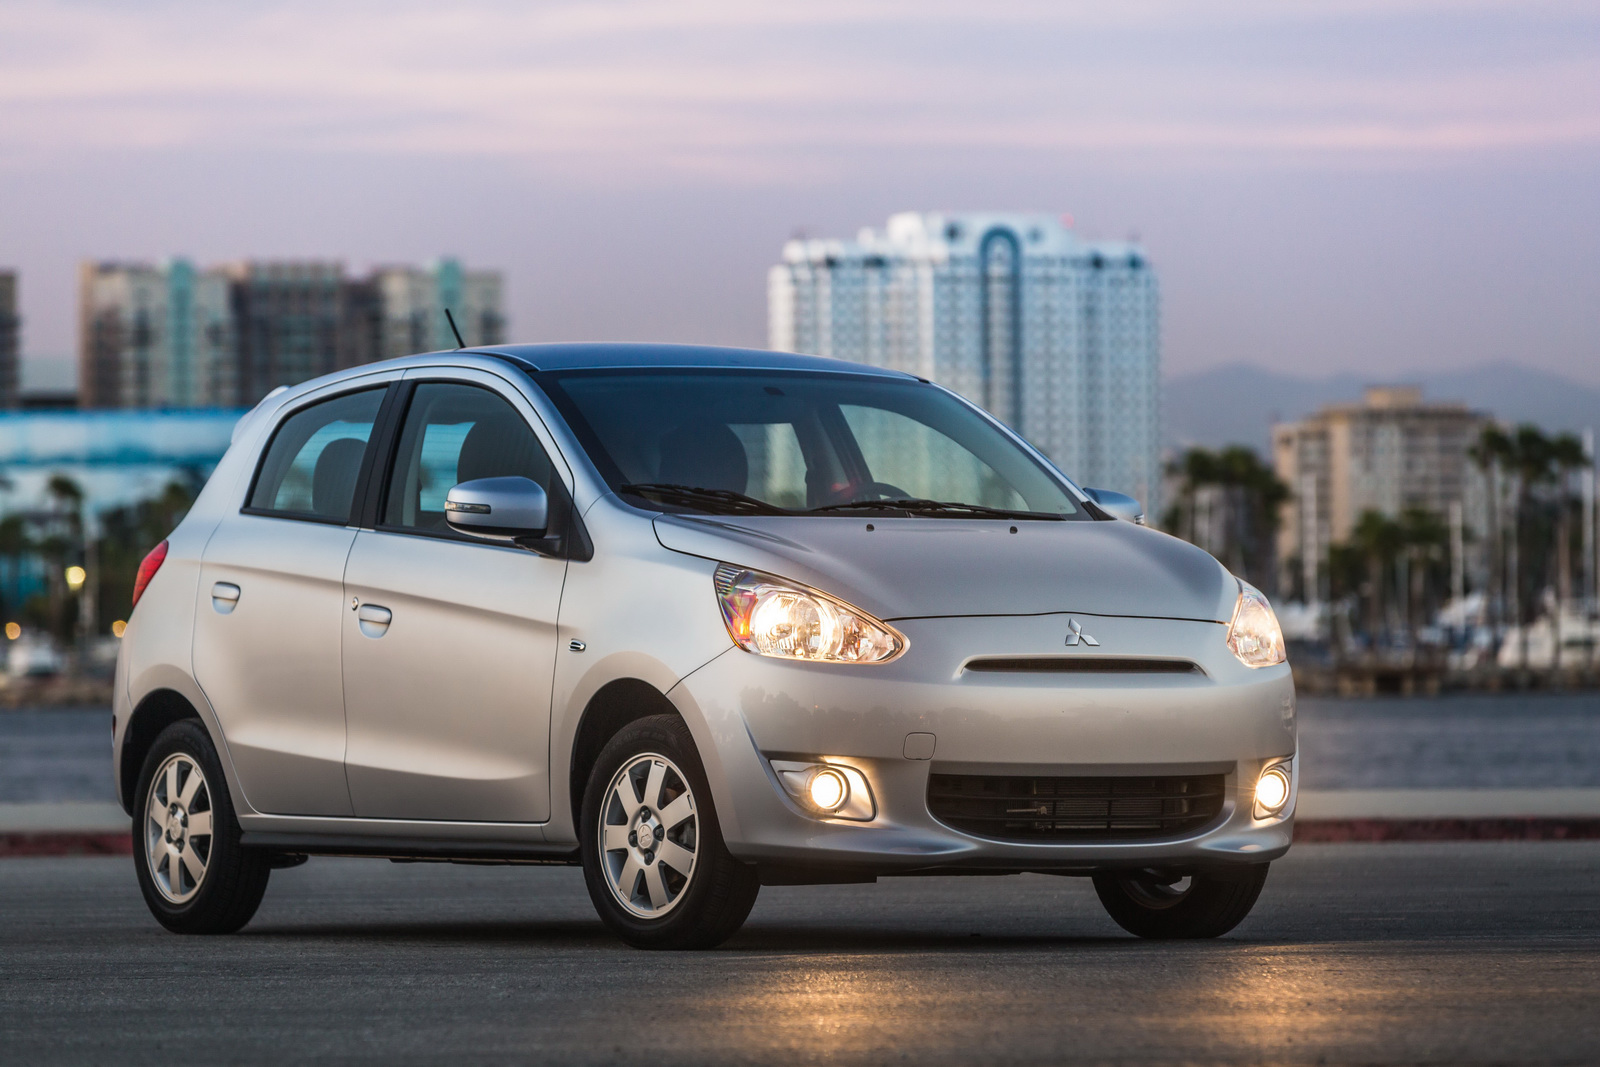 Mitsubishi Mirage Skips 2016MY, Will Return For 2017 With